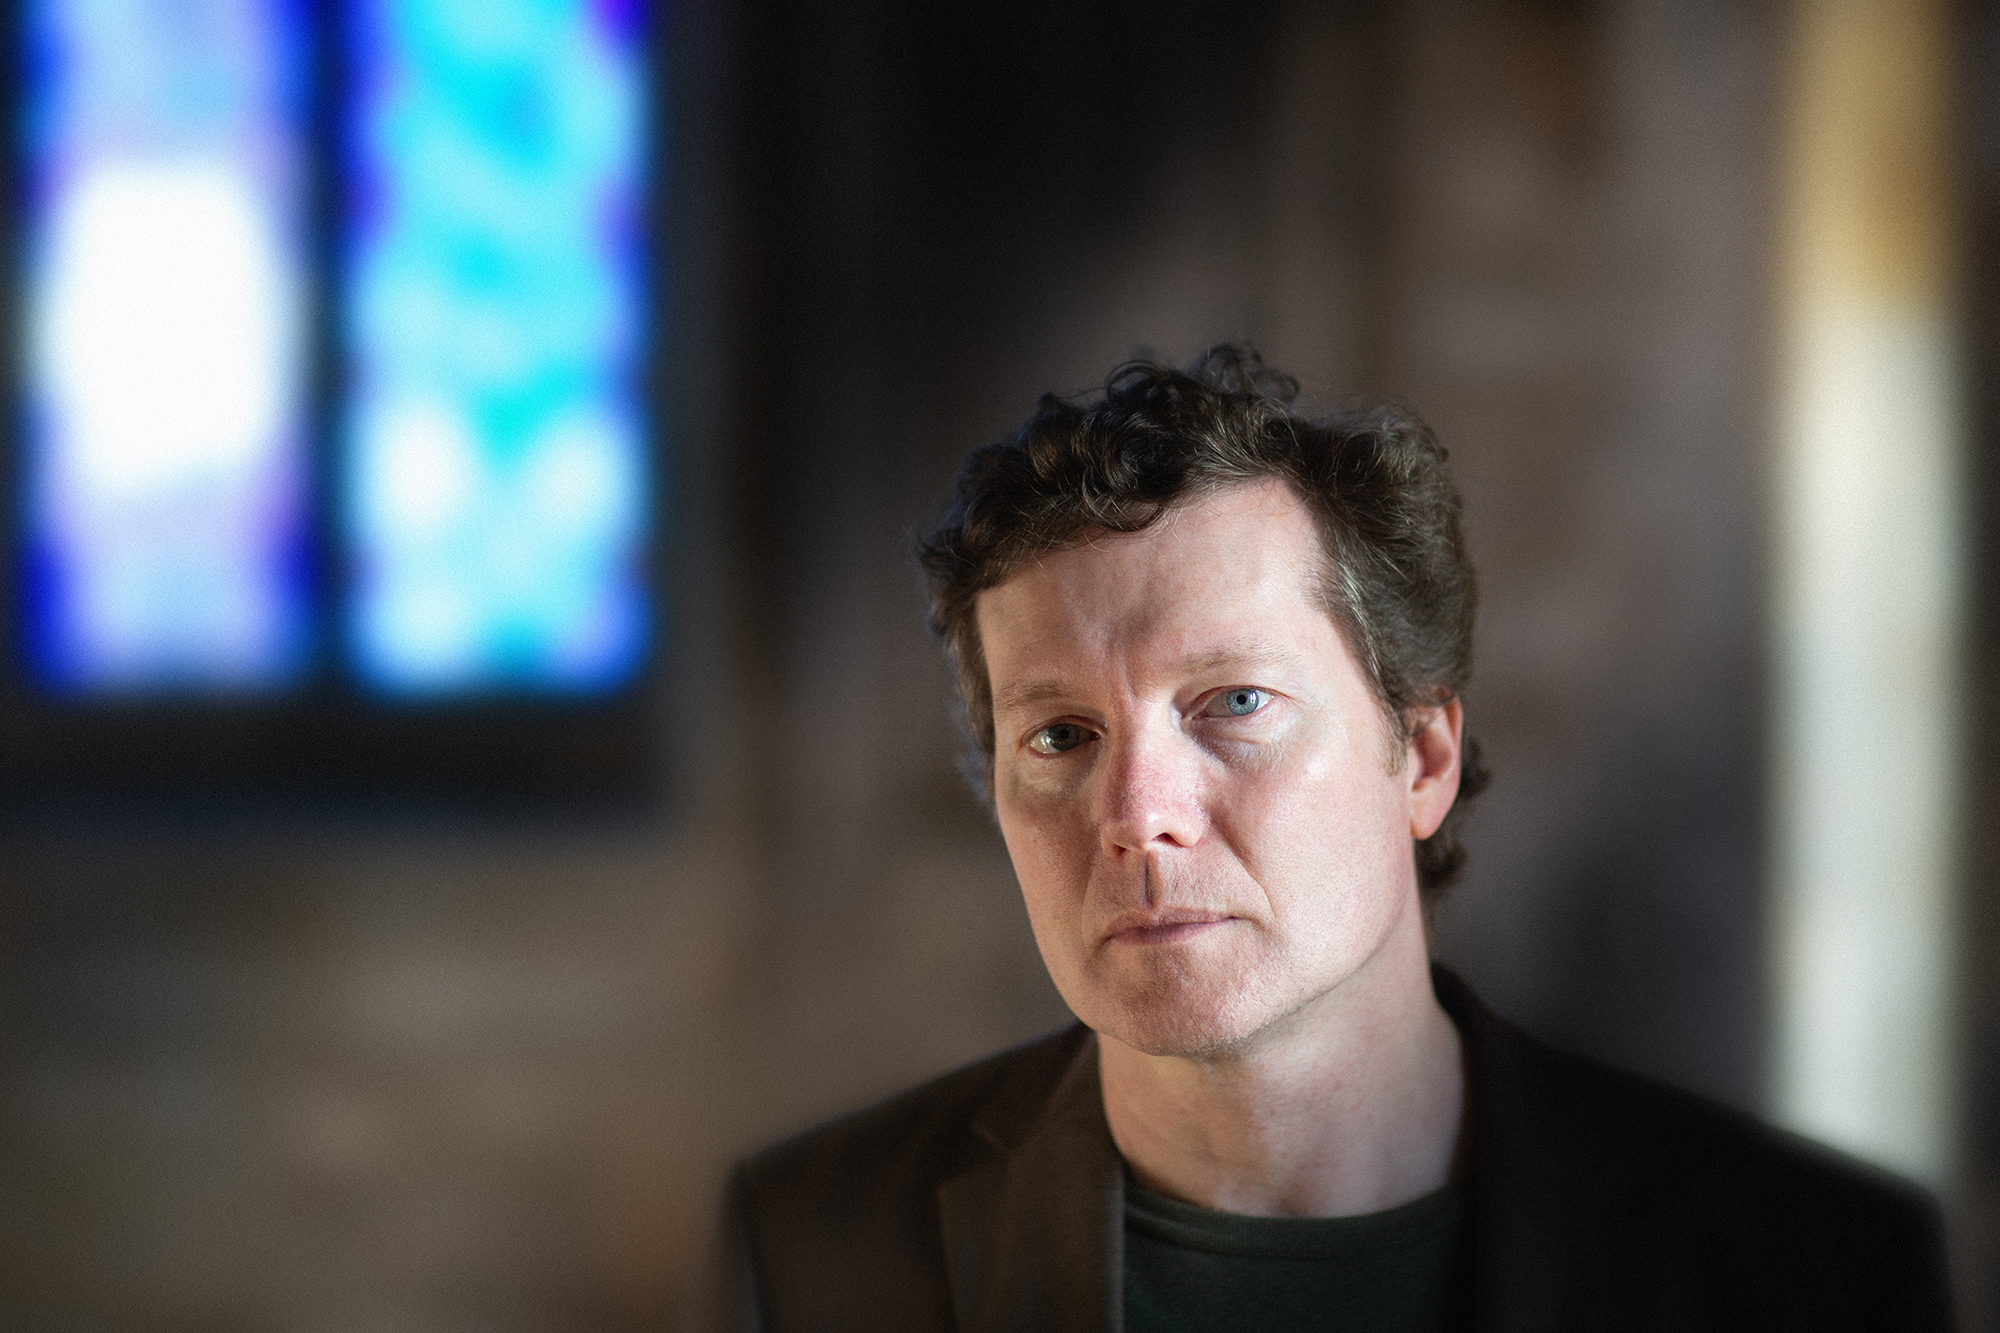 Tim Bowness. Musician